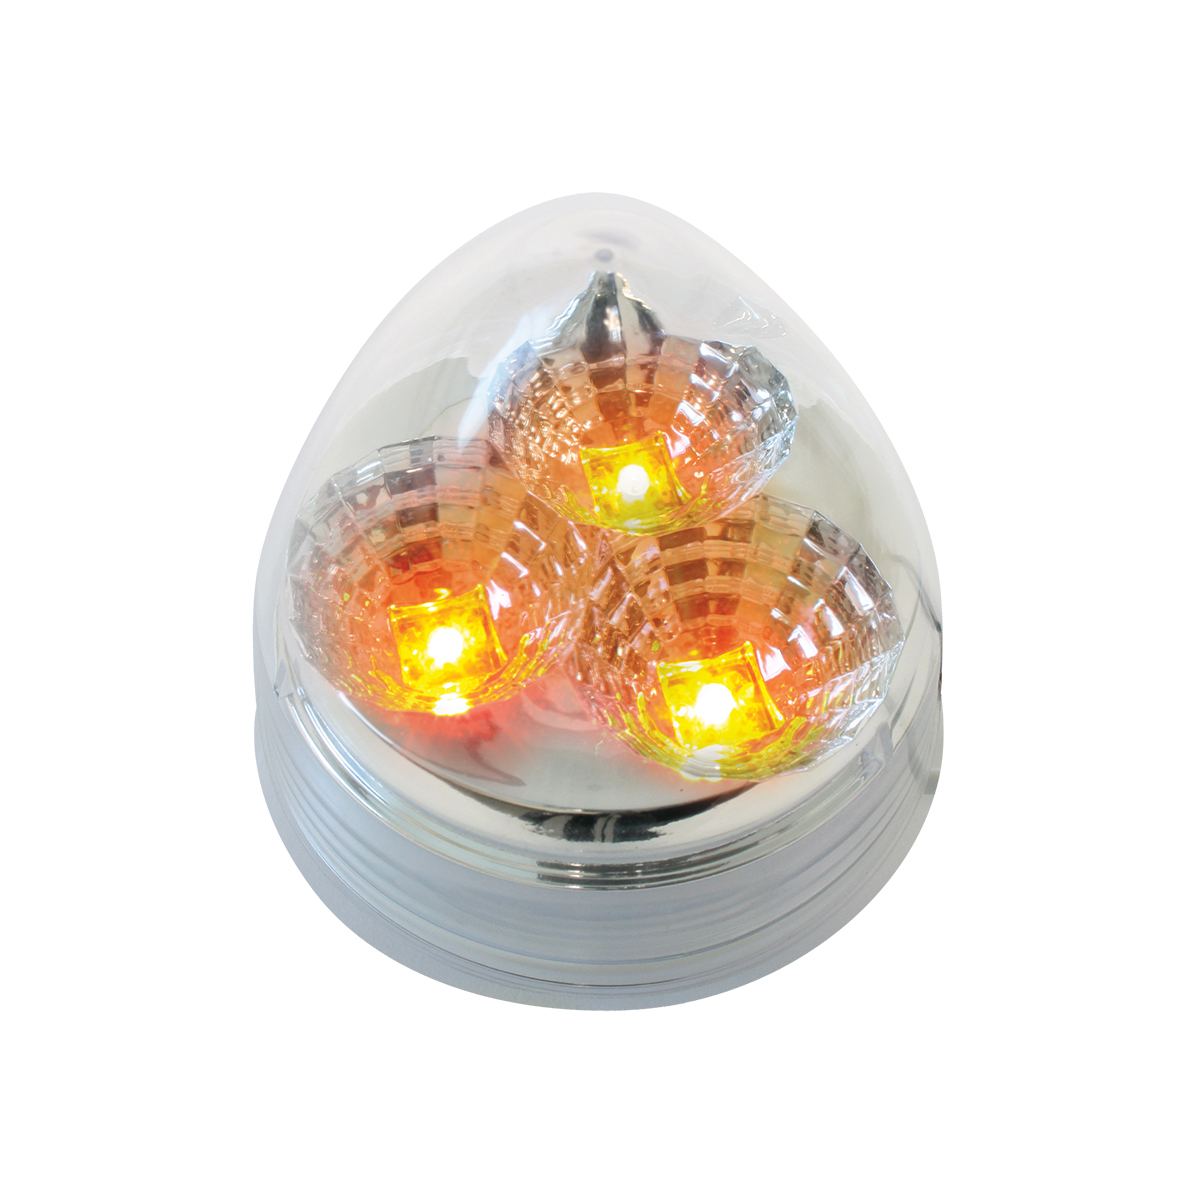 Beehive Spyder LED in Amber/Clear